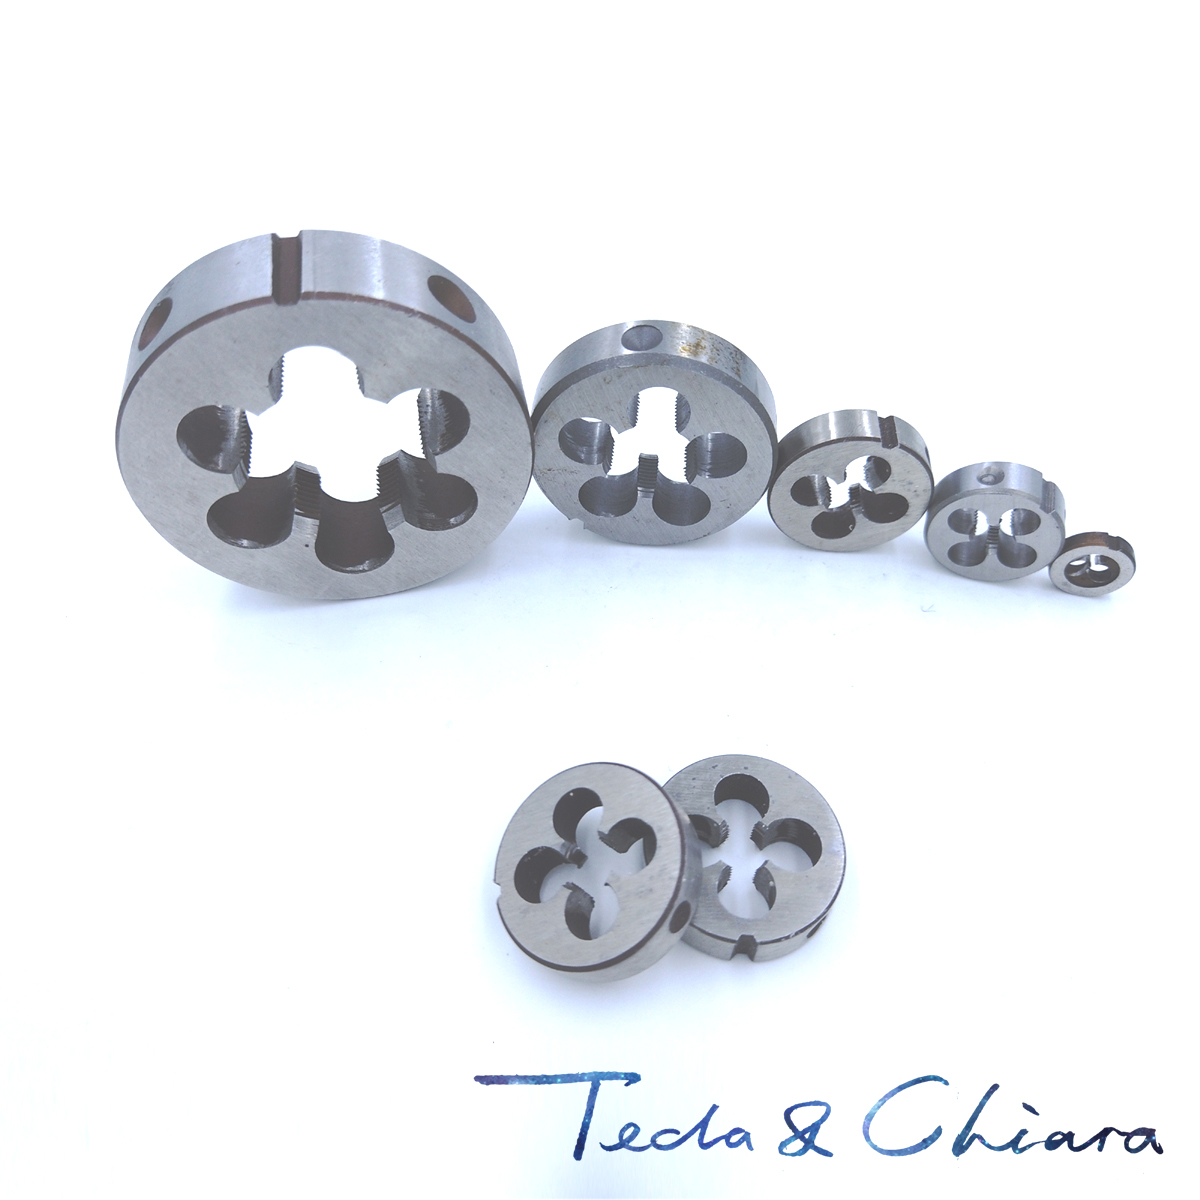 1Pc 17mm 17 X 1.0 Metric Right Hand Die M17 X 1mm 1 17*1  Pitch Threading Tools For Mold Machining Free Shipping